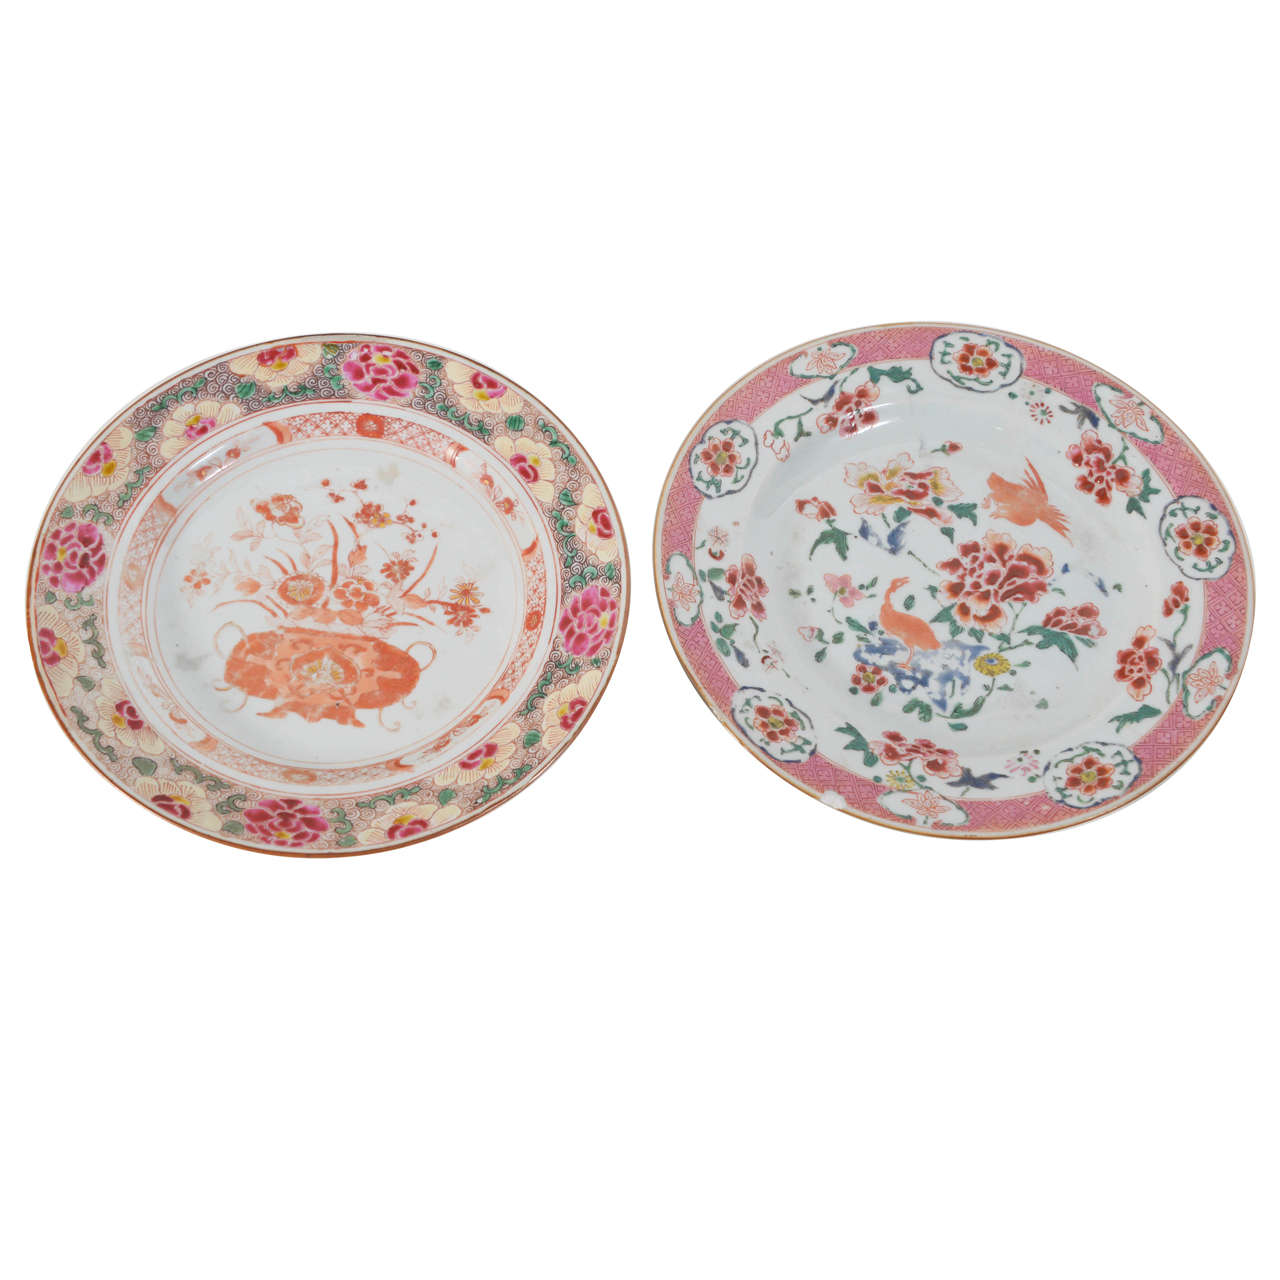 Companion Pair of Chinese Export Porcelain Plates